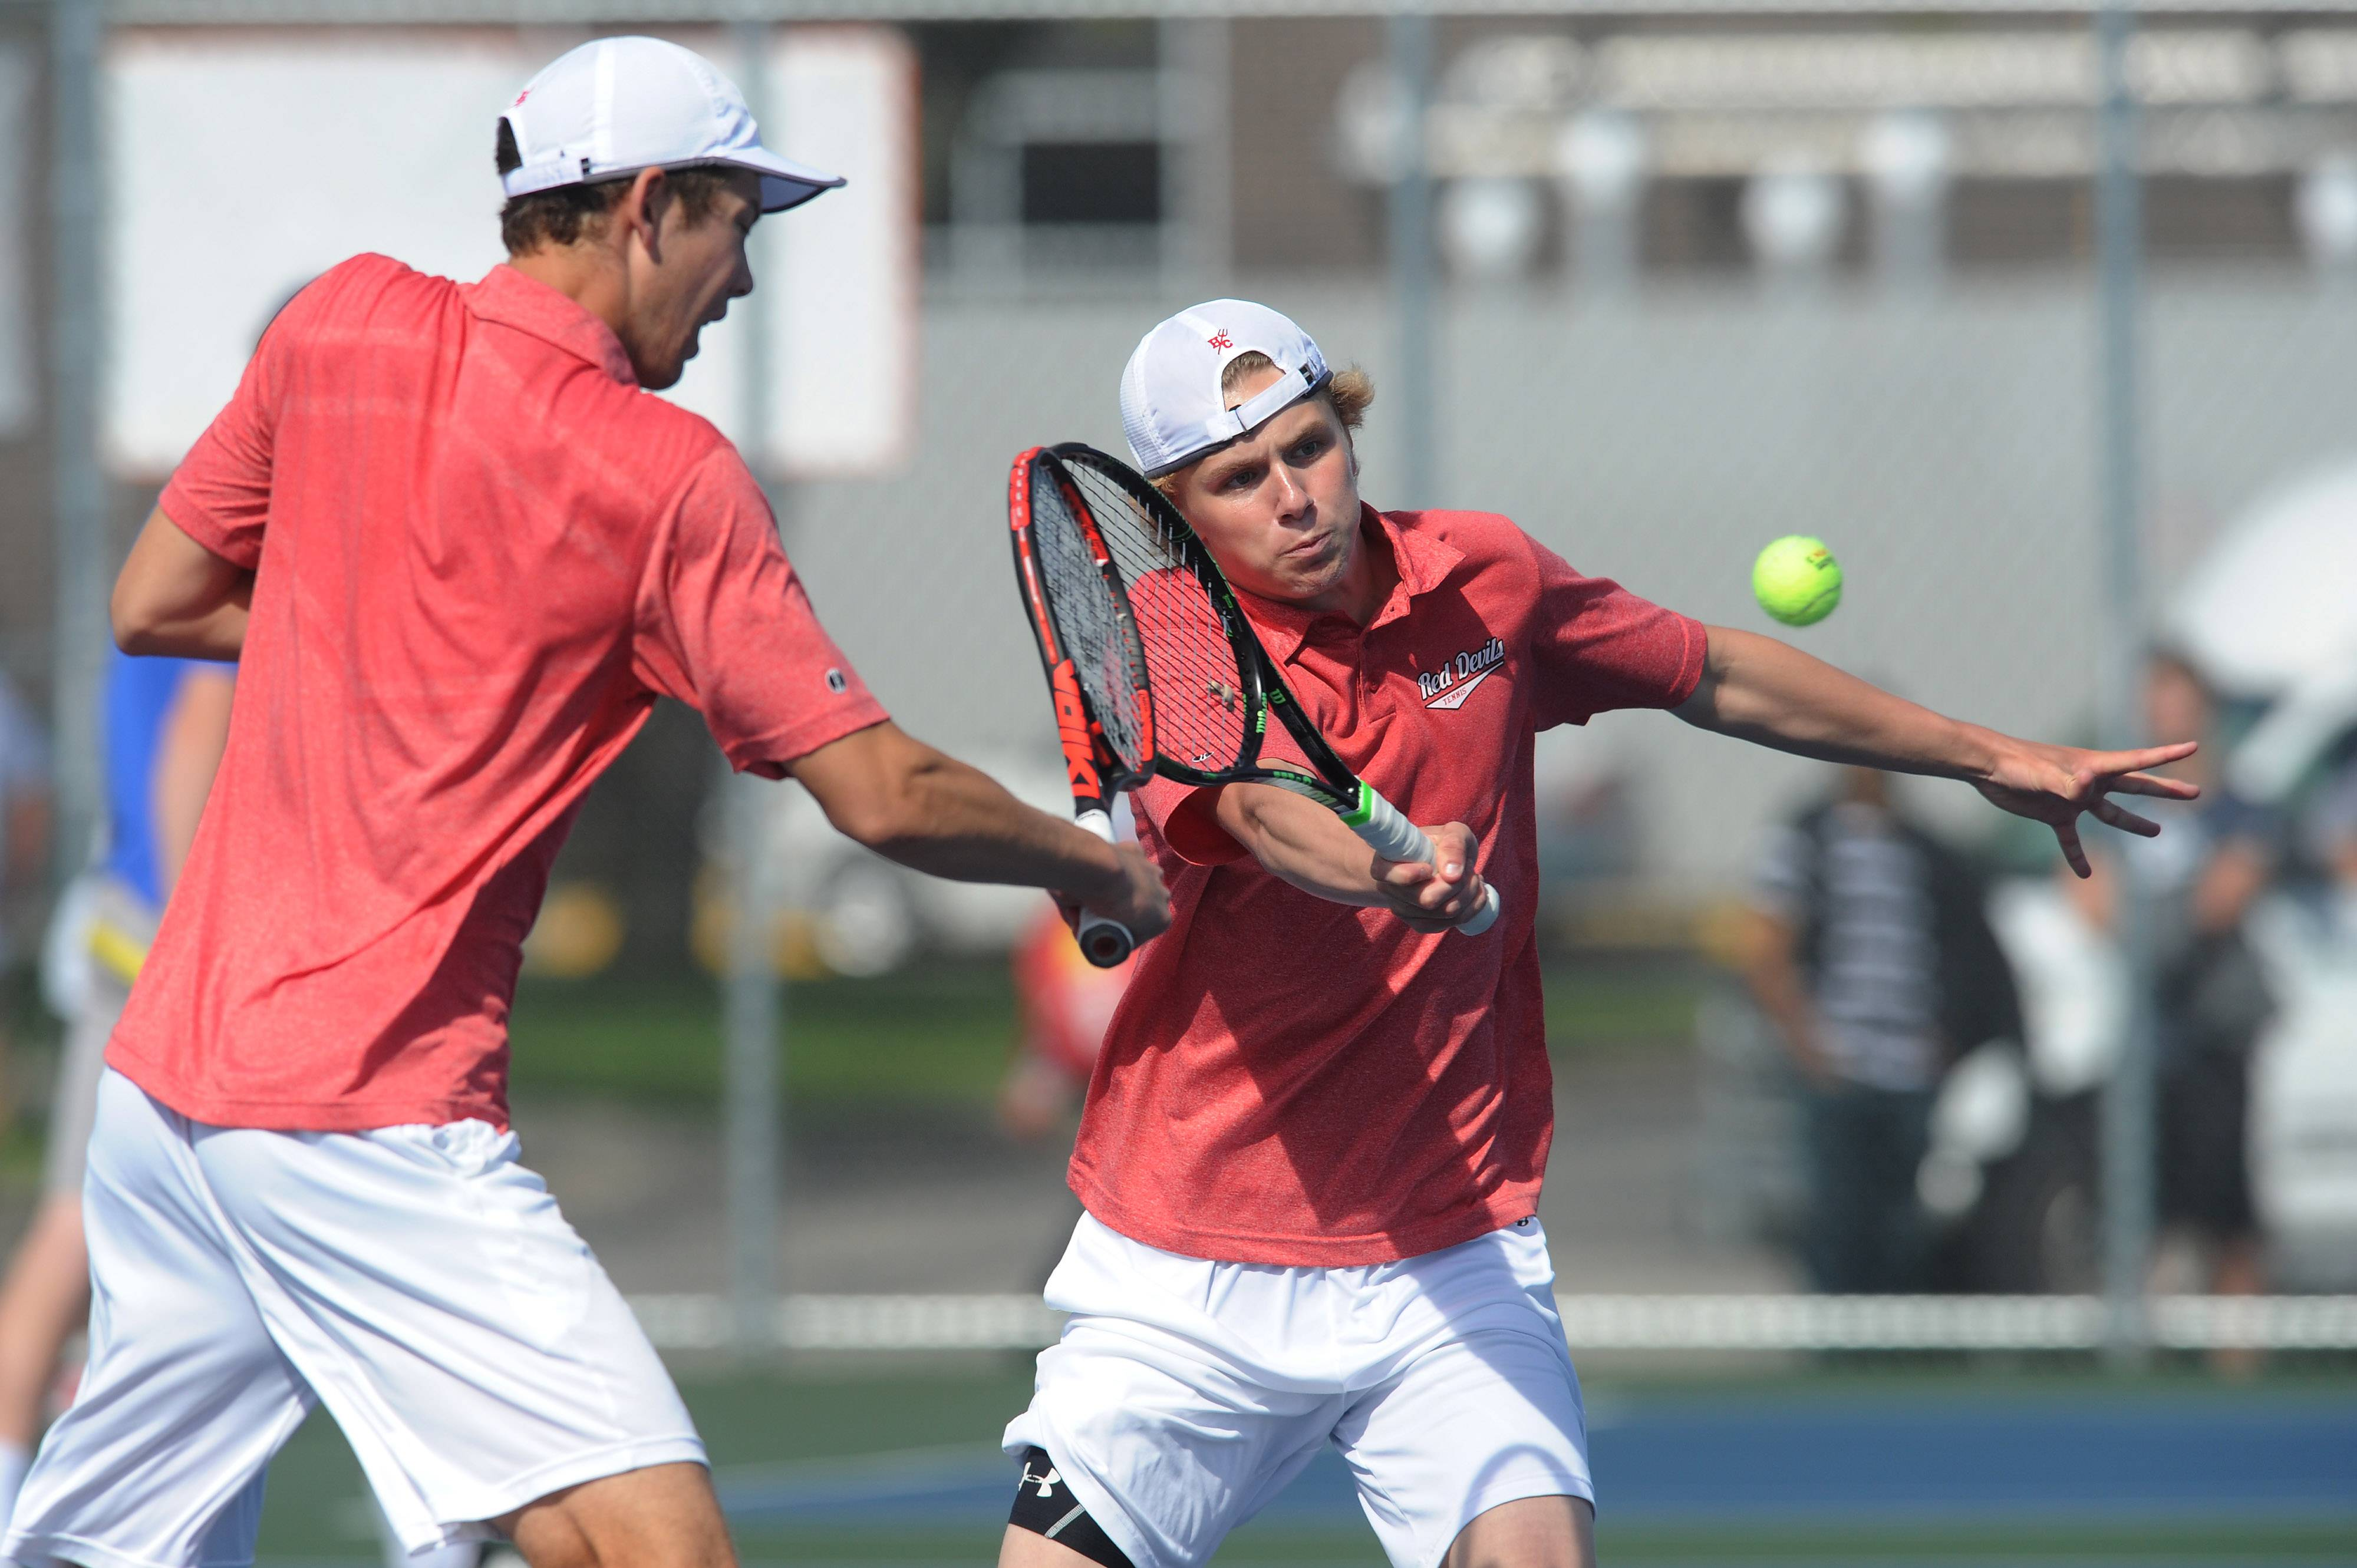 Hinsdale Central's Trevor Hamilton returns a slam as his partner Andrew Buhelos backs him up in the Class 2A Doubles boys semifinals tennis at Hersey on Saturday. They were playing Sebastien DesRoberts and Rohan Gupta of Glen Brook South.